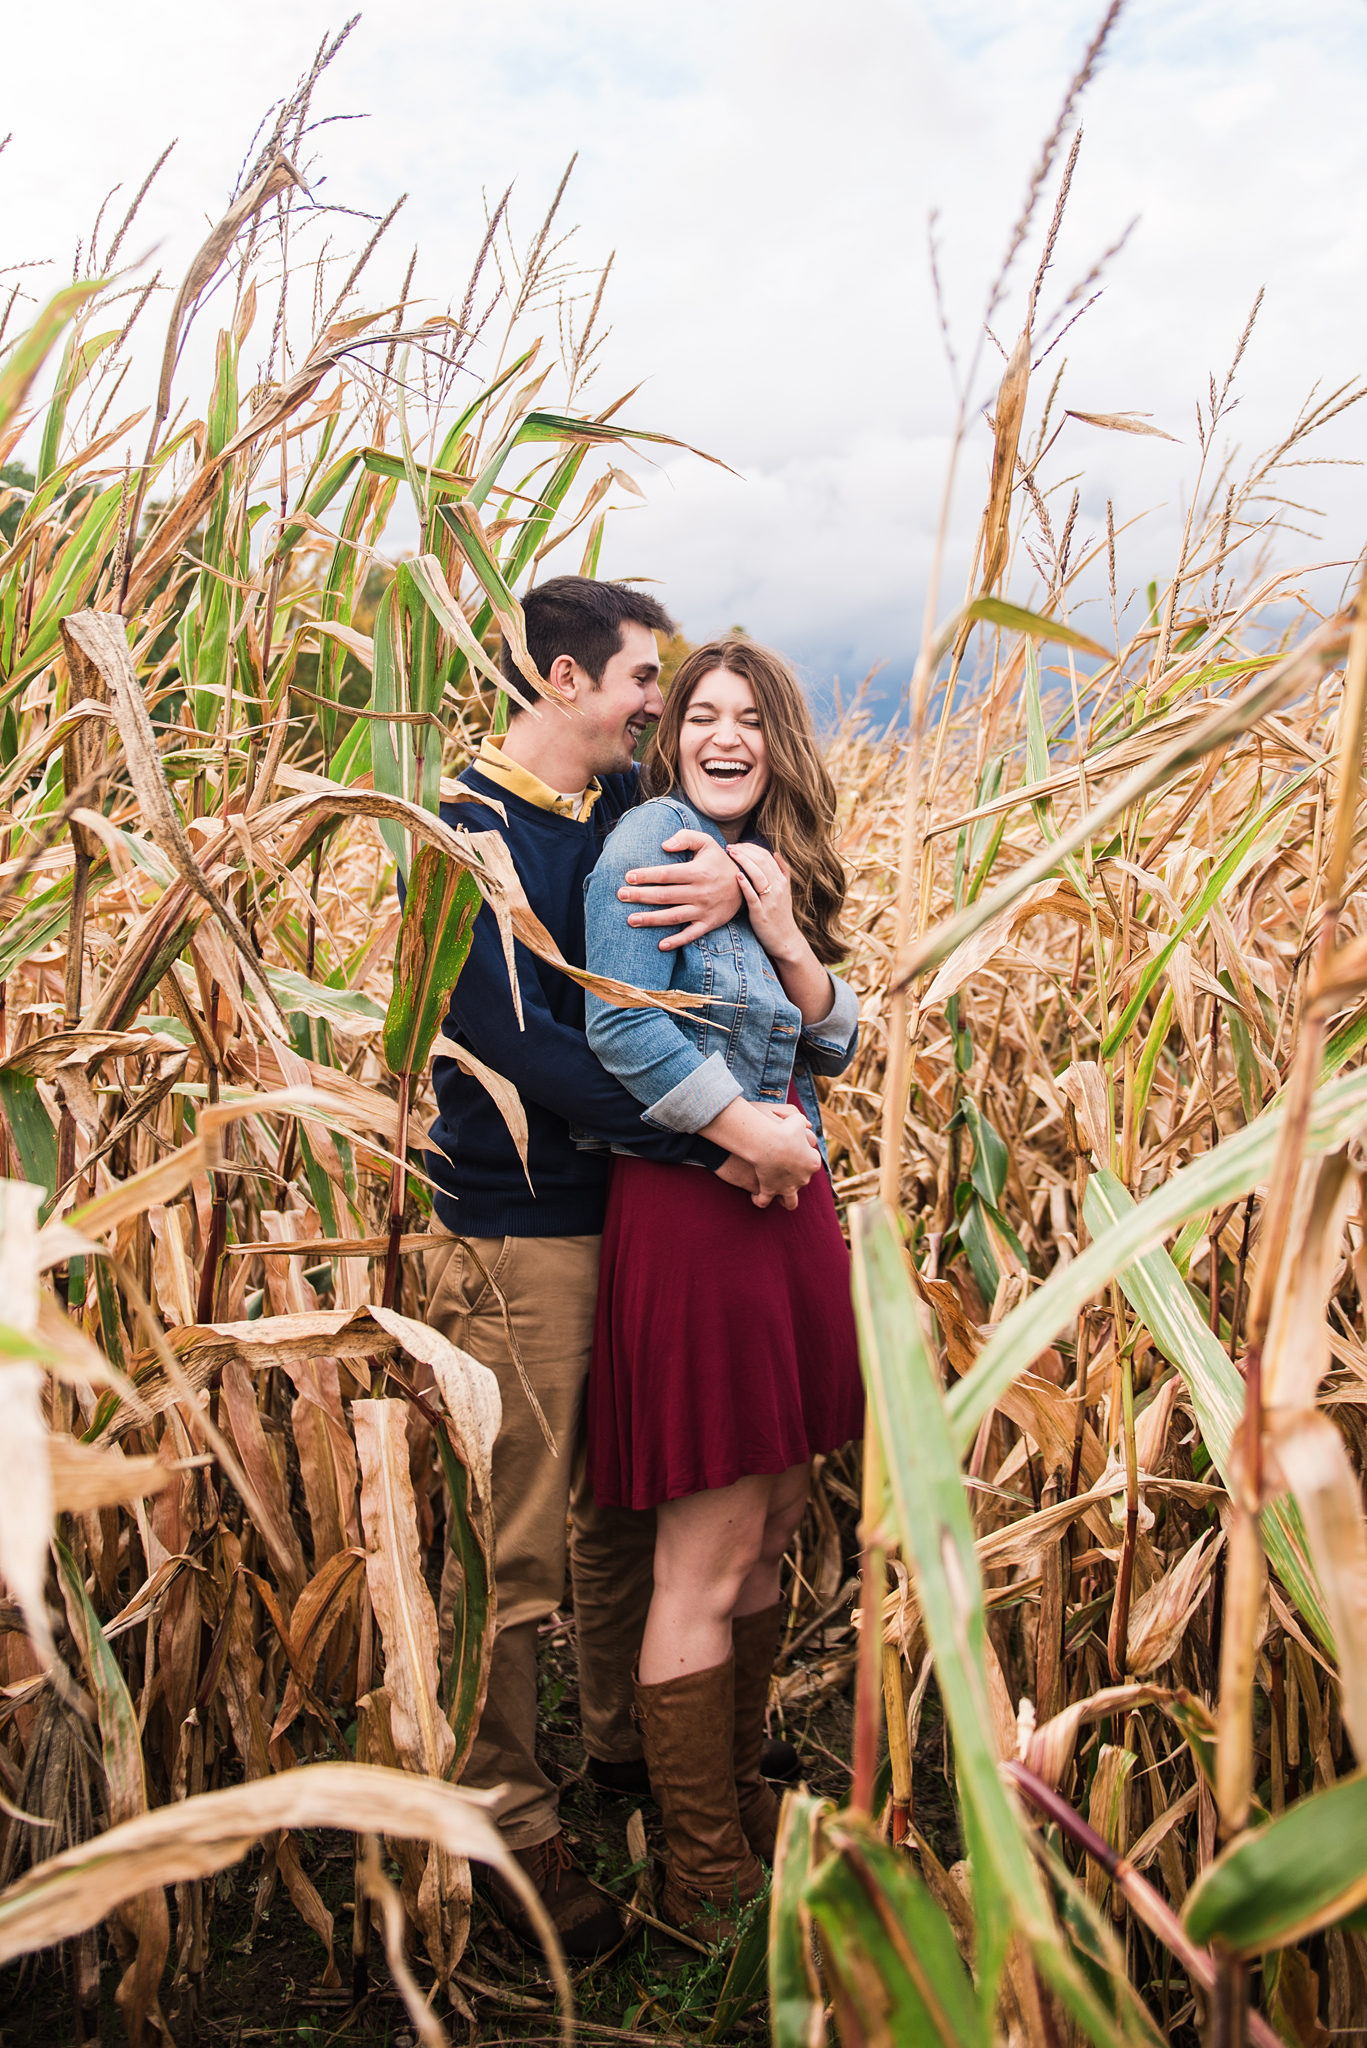 Becker_Farms_Buffalo_Engagement_Session_JILL_STUDIO_Rochester_NY_Photographer_DSC_4726.jpg